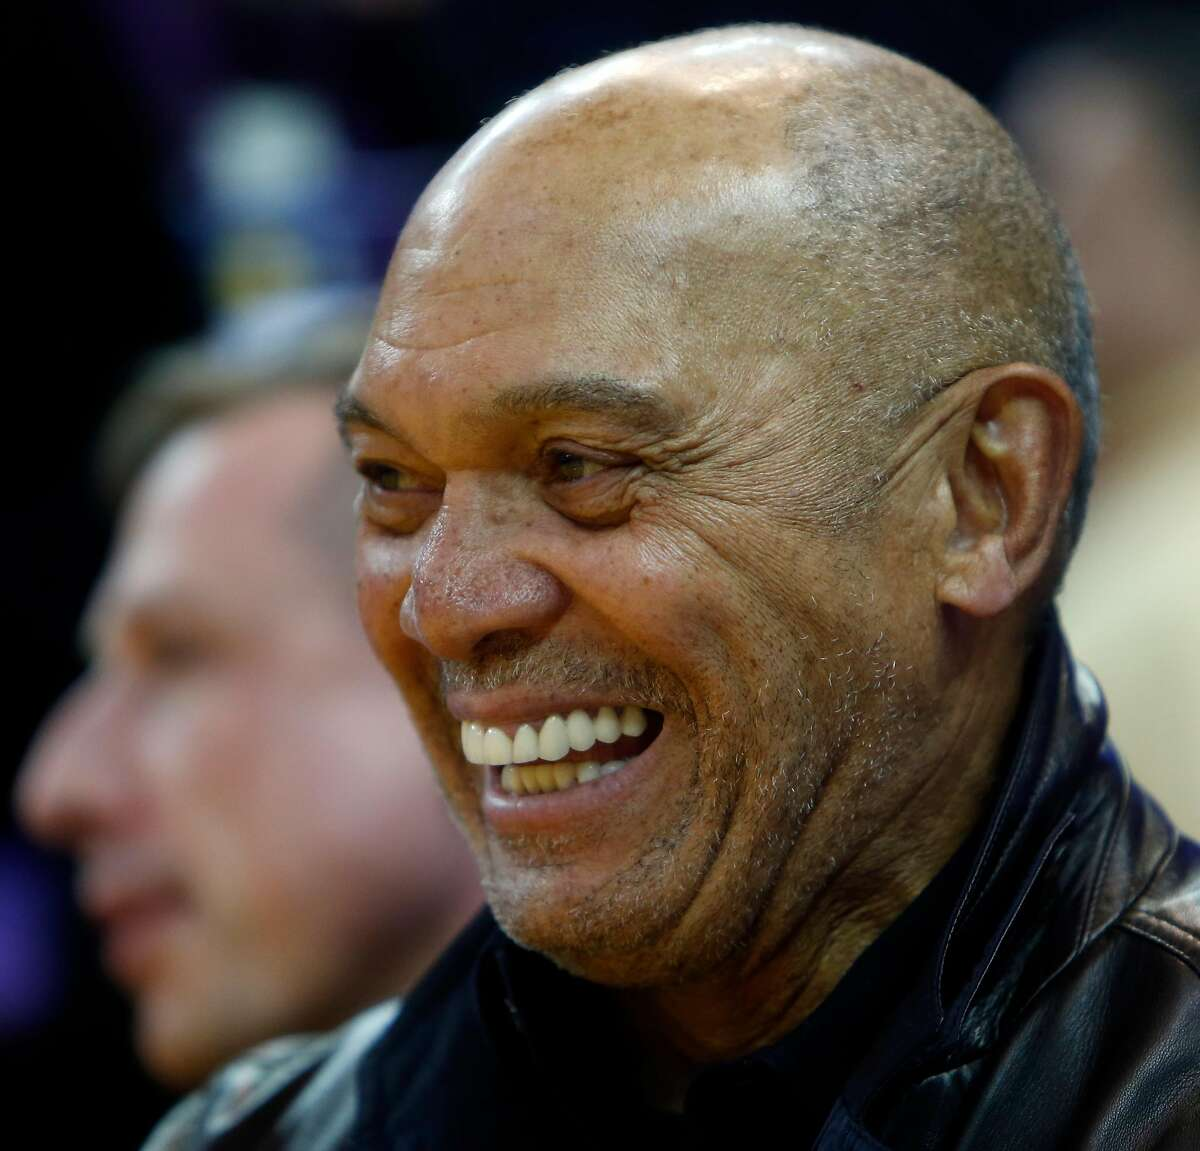 Baseball Hall of Famer Reggie Jackson laughs as he watches Golden State Warriors' Stephen Curry drain a deep 3-pointer during pregame of Warriors' game against Charlotte Hornets at Oracle Arena in Oakland, Calif., on Monday, January 4, 2016.